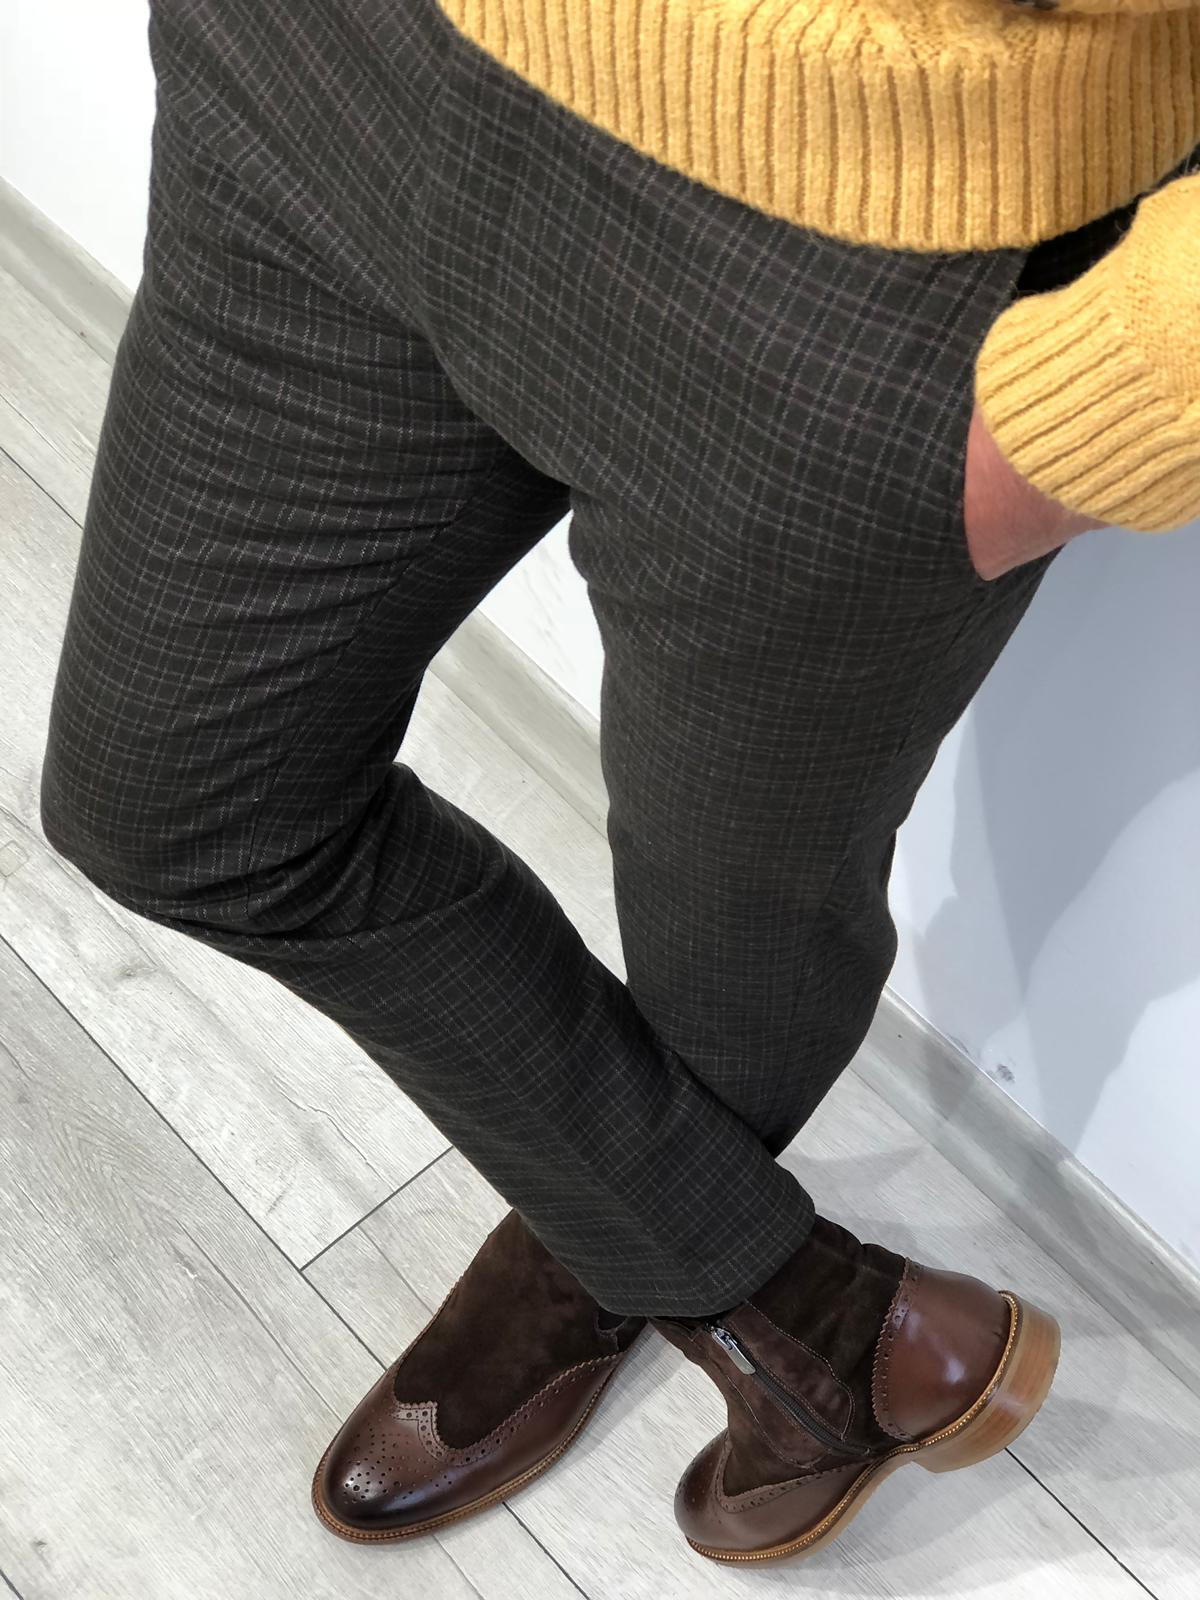 How to Wear Brown Shoes With a Black Suit or Trousers by GentWith Blog